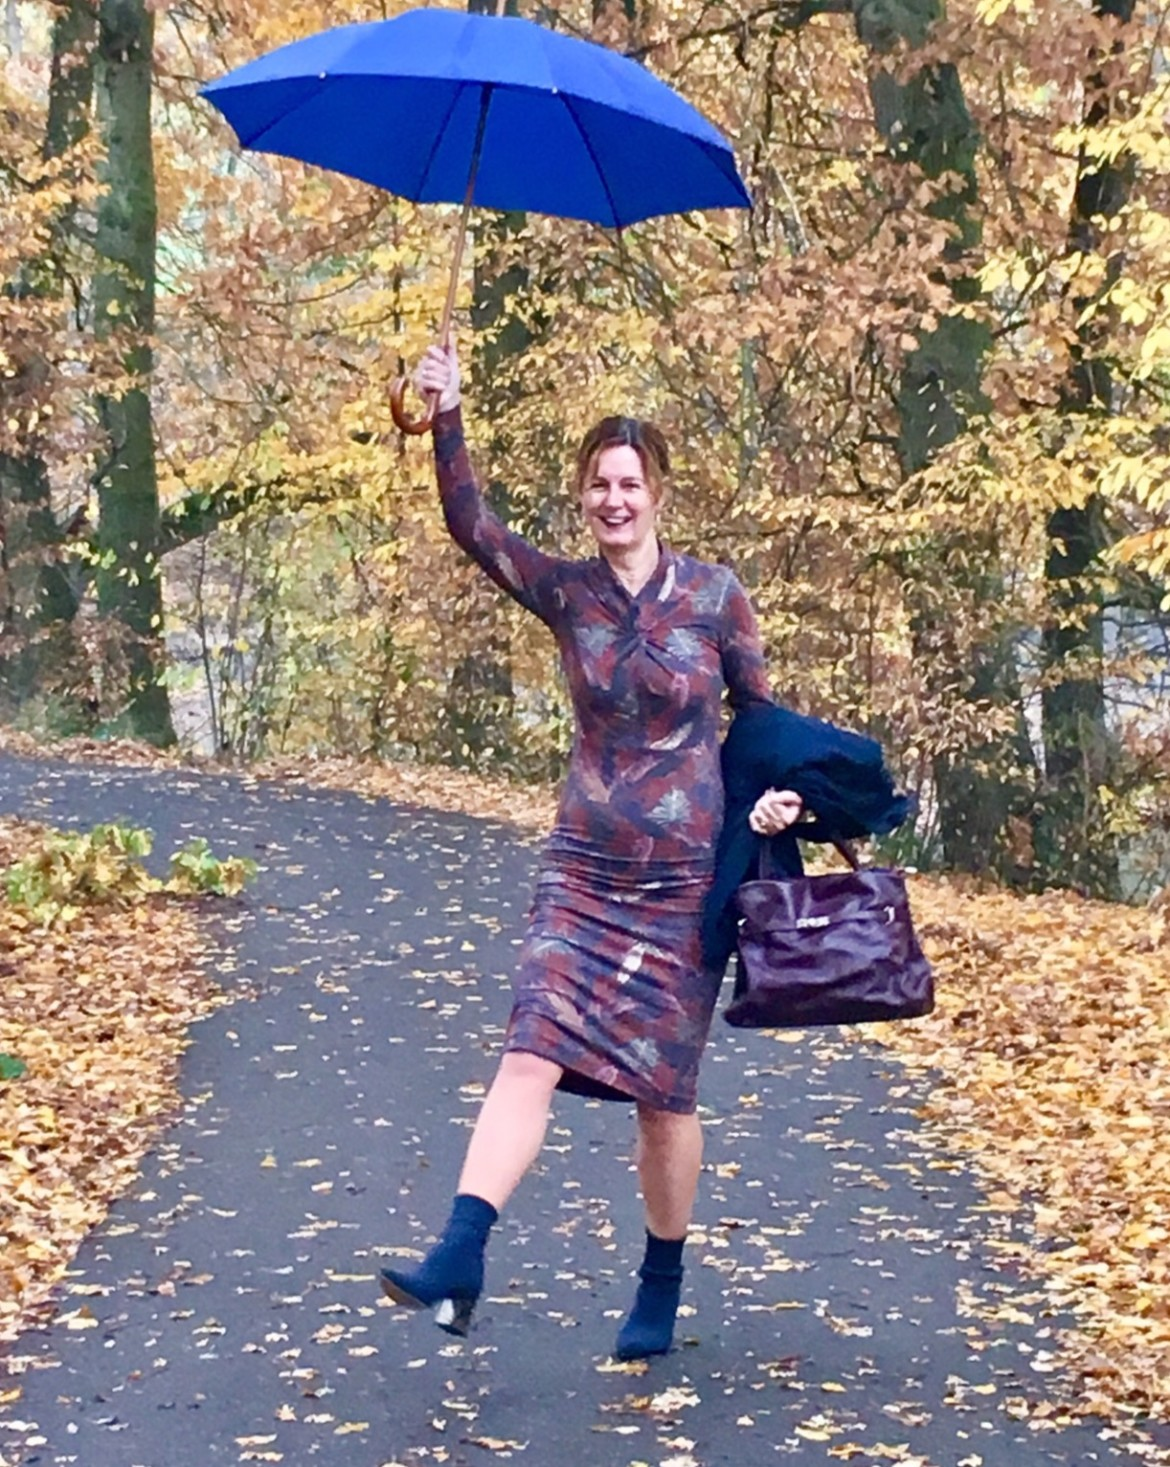 burda style Nutzerkreation mephisto09 Singing in the rain ☔️